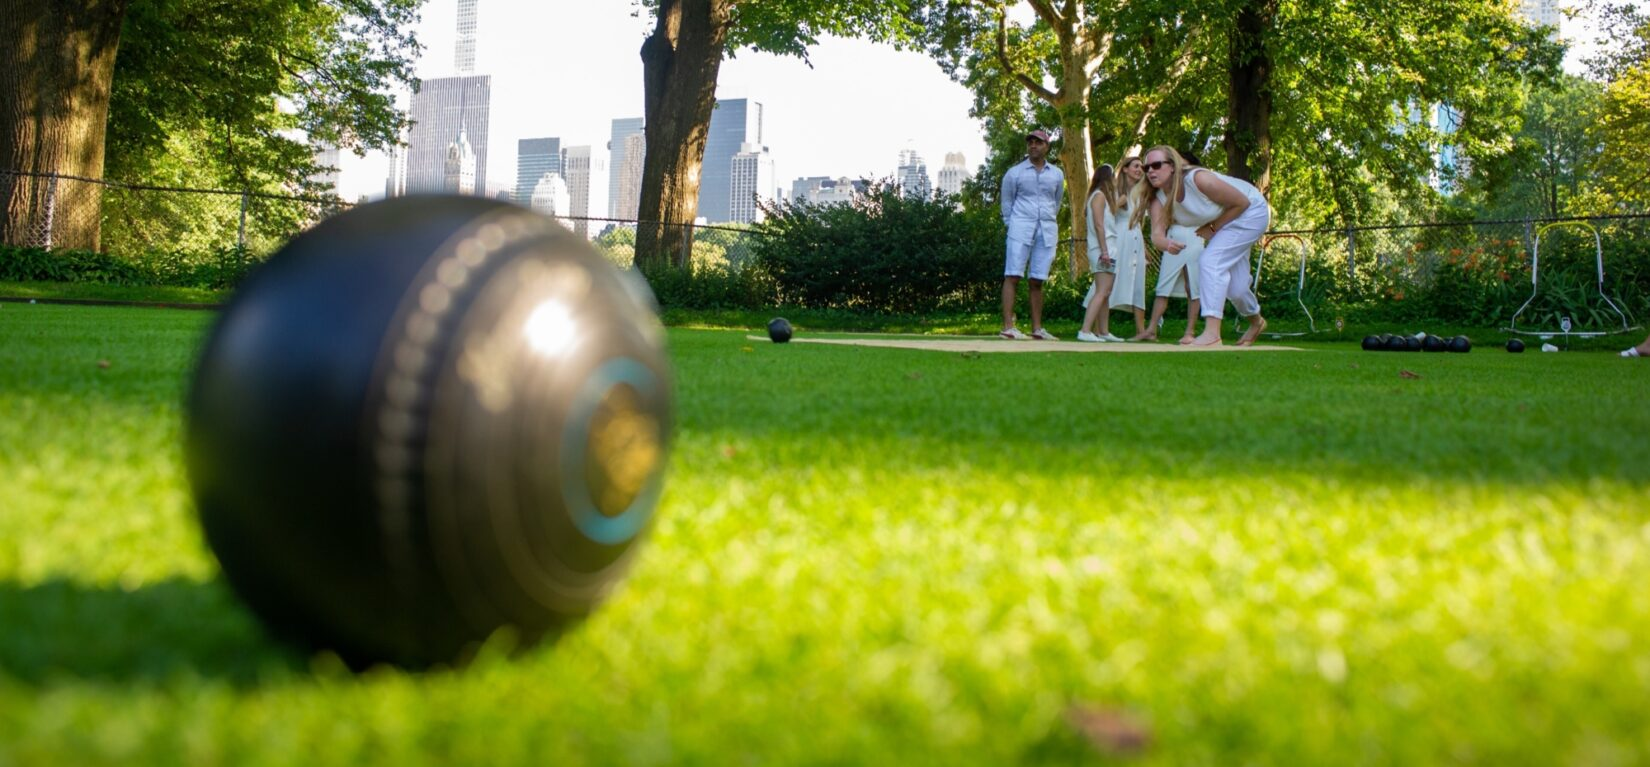 Lawn bowlers practicing their craft in summer